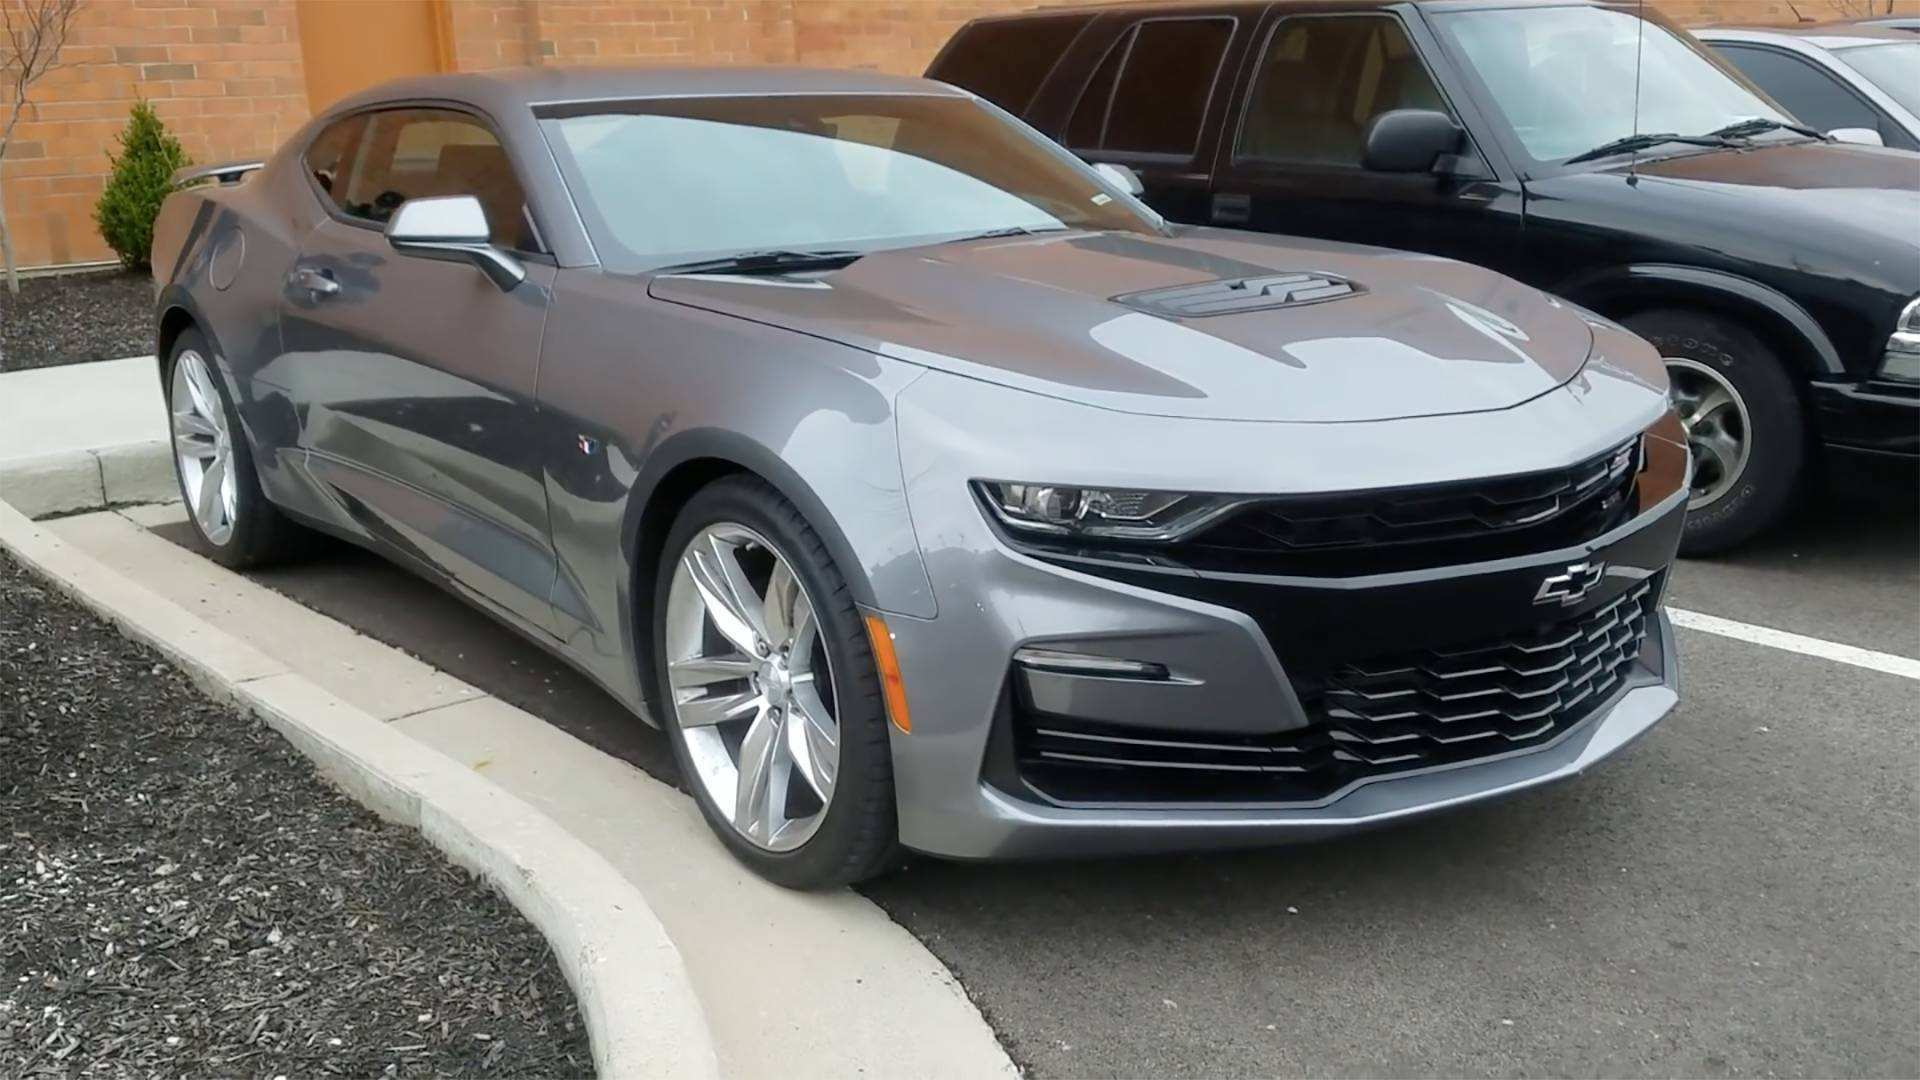 13 Gallery of 2019 Chevrolet Camaro Engine Redesign with 2019 Chevrolet Camaro Engine